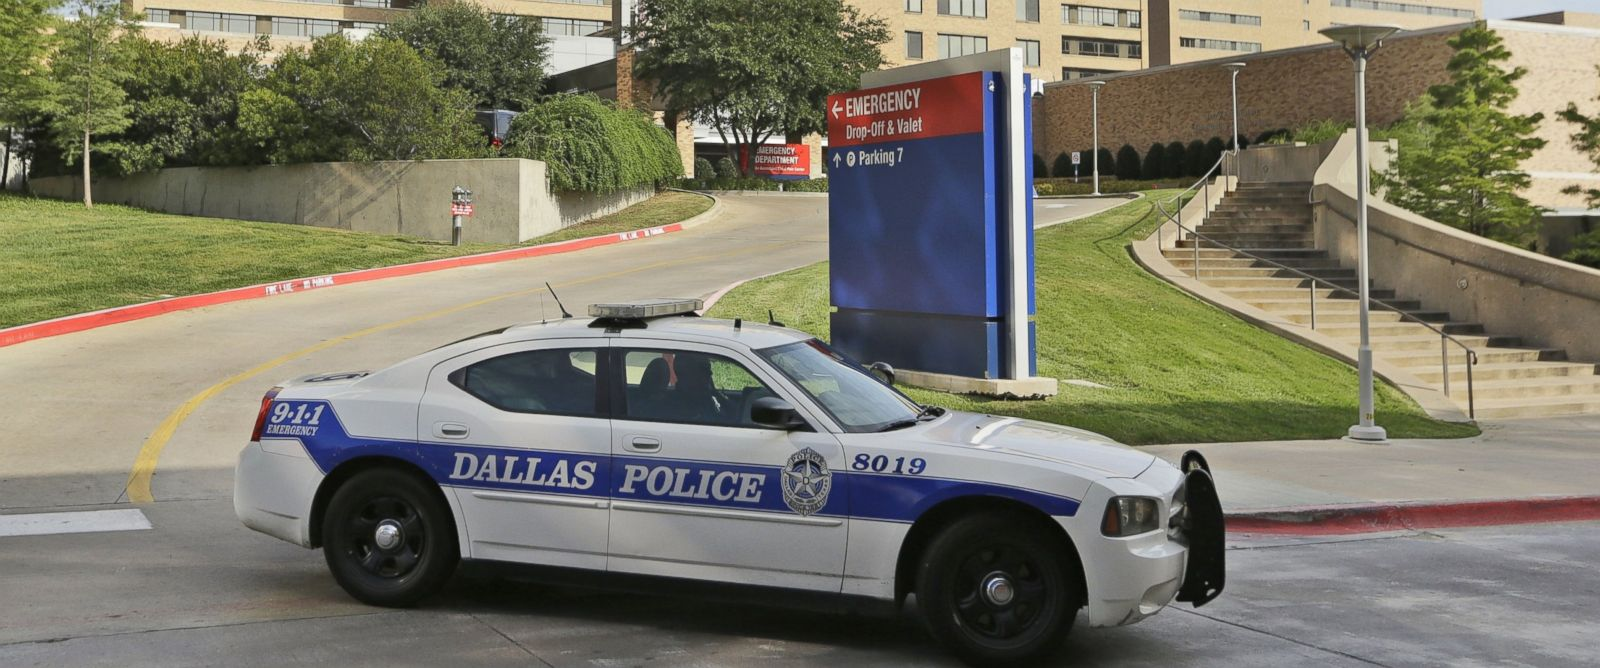 PHOTO: A police car drives past the entrance to the Texas Health Presbyterian Hospital in Dallas